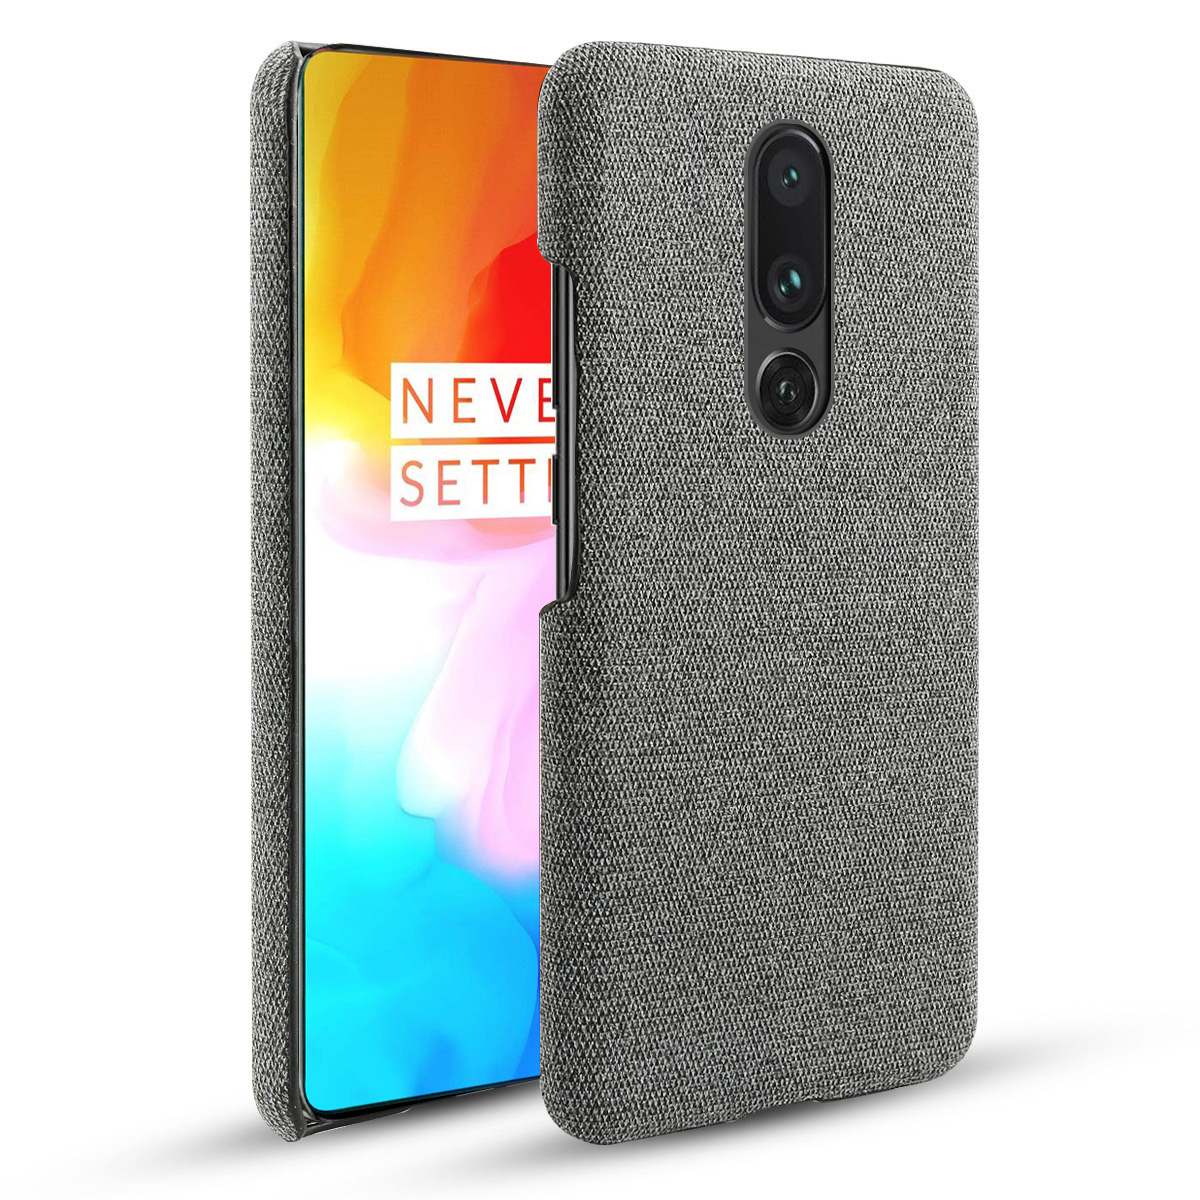 For Oneplus 7 7 Pro 8 8 Pro Case Slim Woven Fabric Cloth Hard PC Cover For One Plus 7 Pro Oneplus 6 6T 7T 7T Pro Case Shockproof